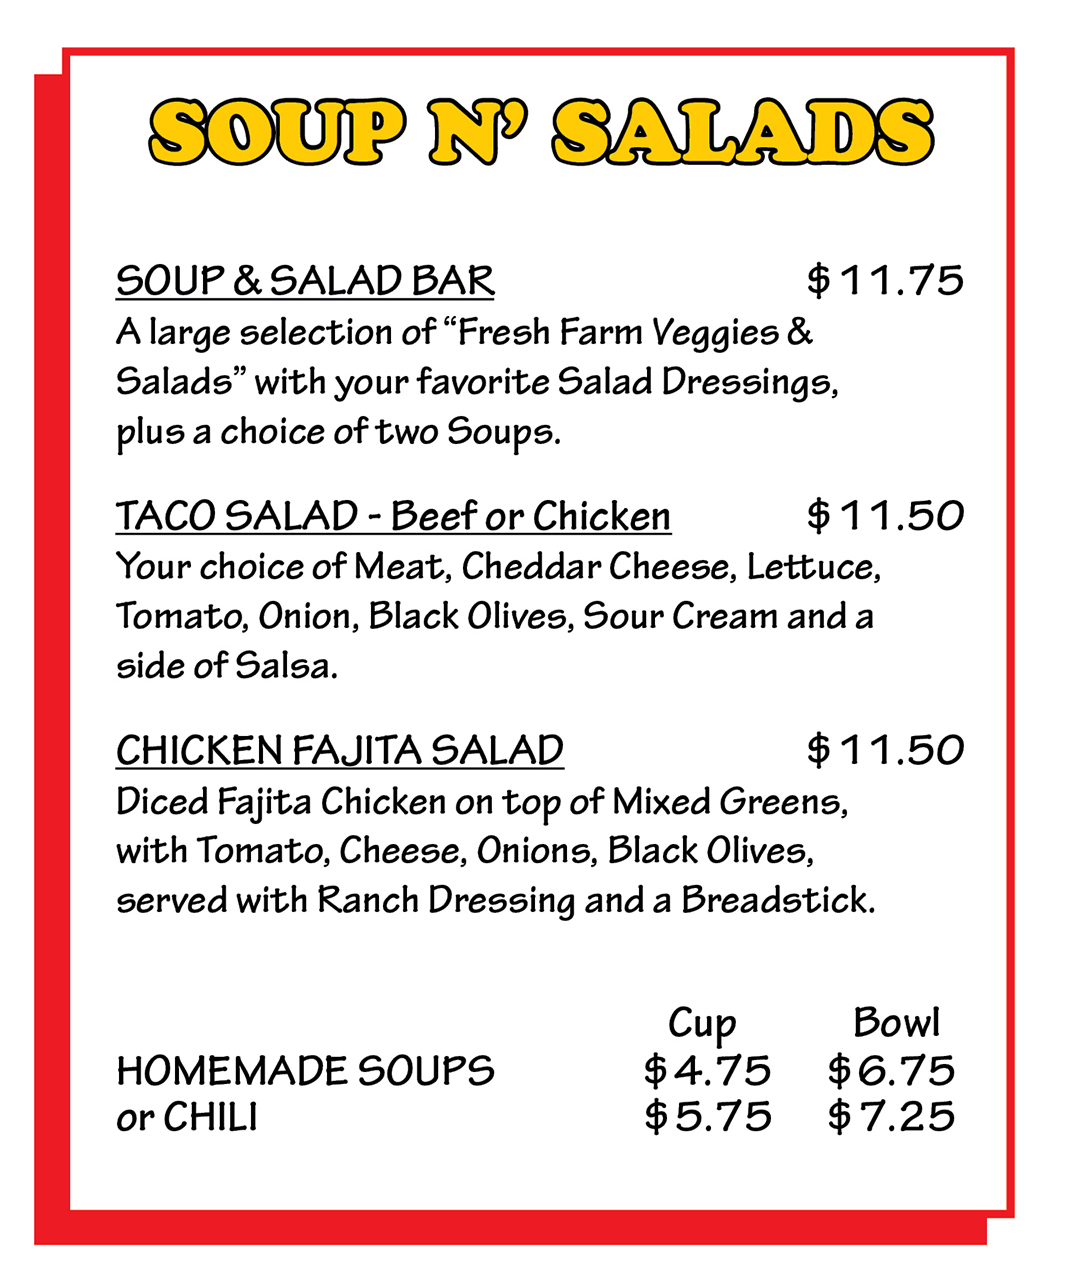 Soups and Salad